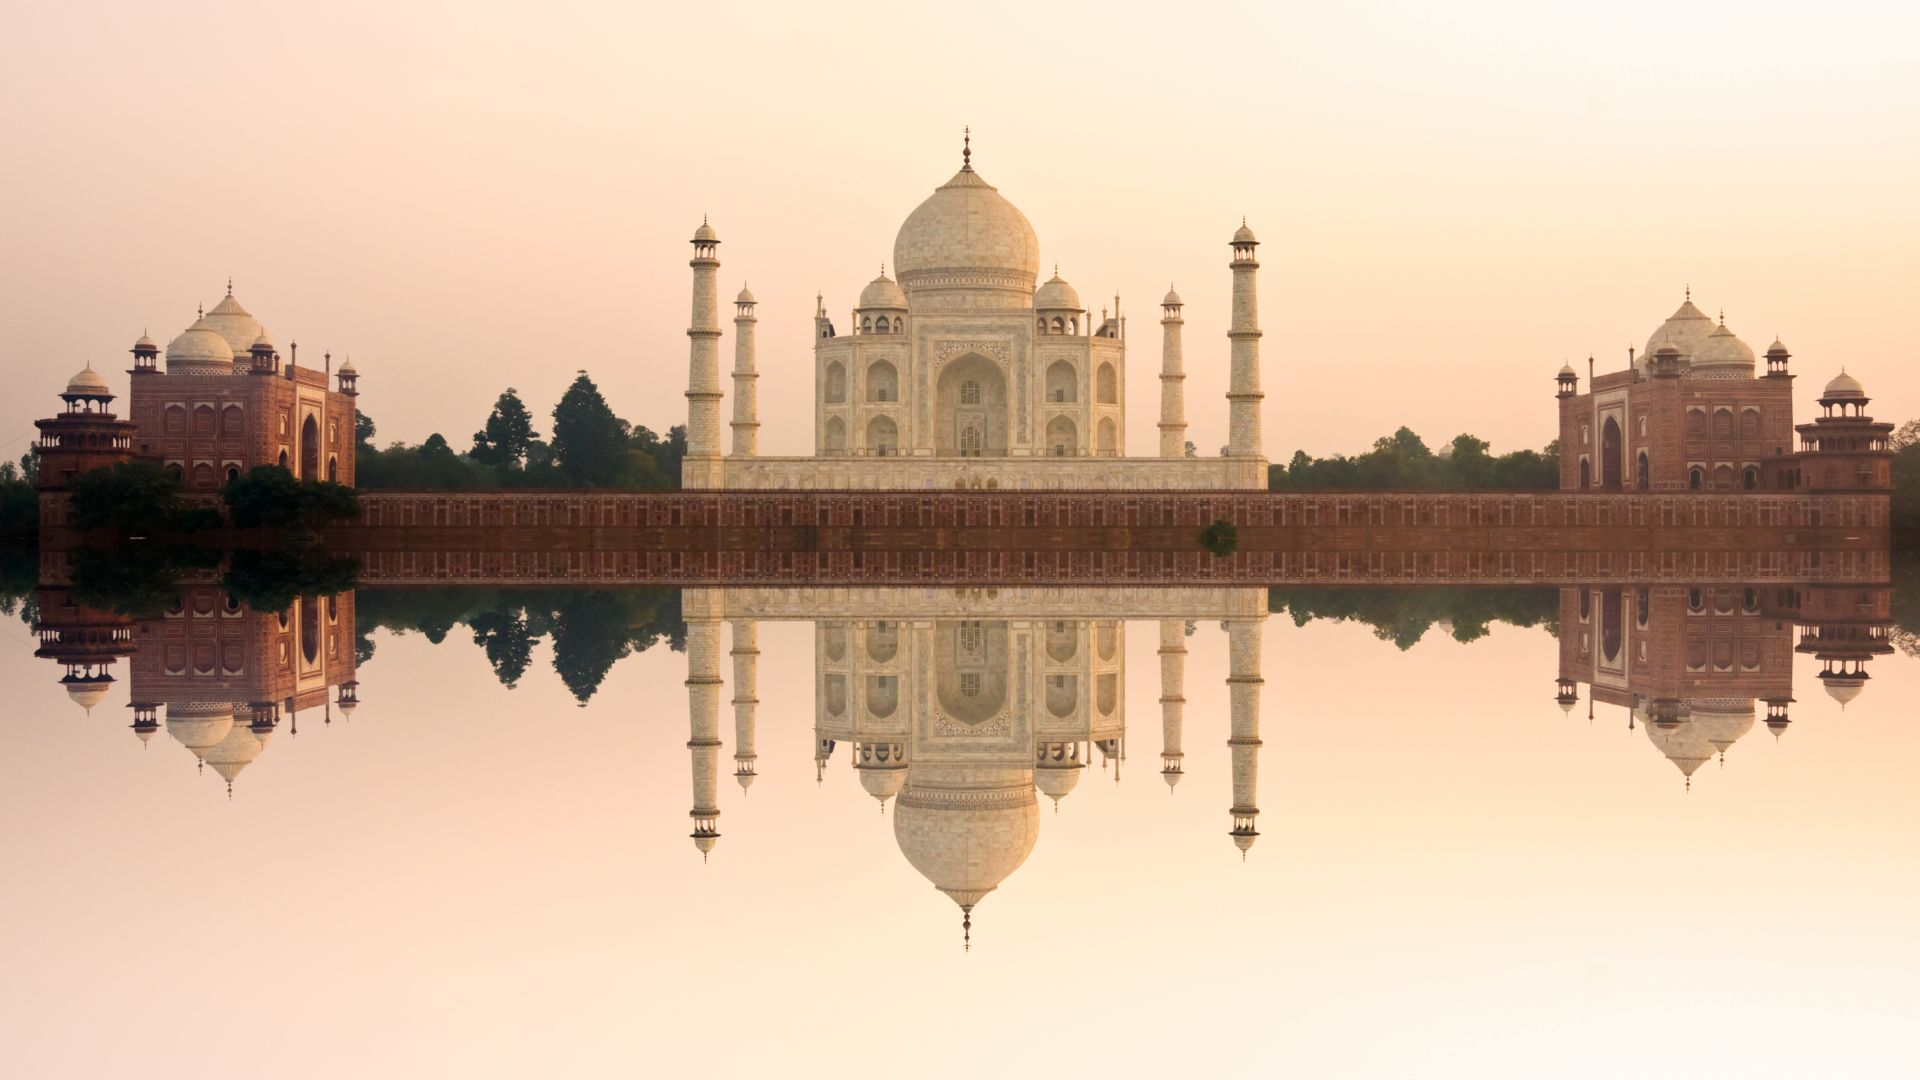 Taj Mahal, India, temple, castle, travel, tourism (horizontal)